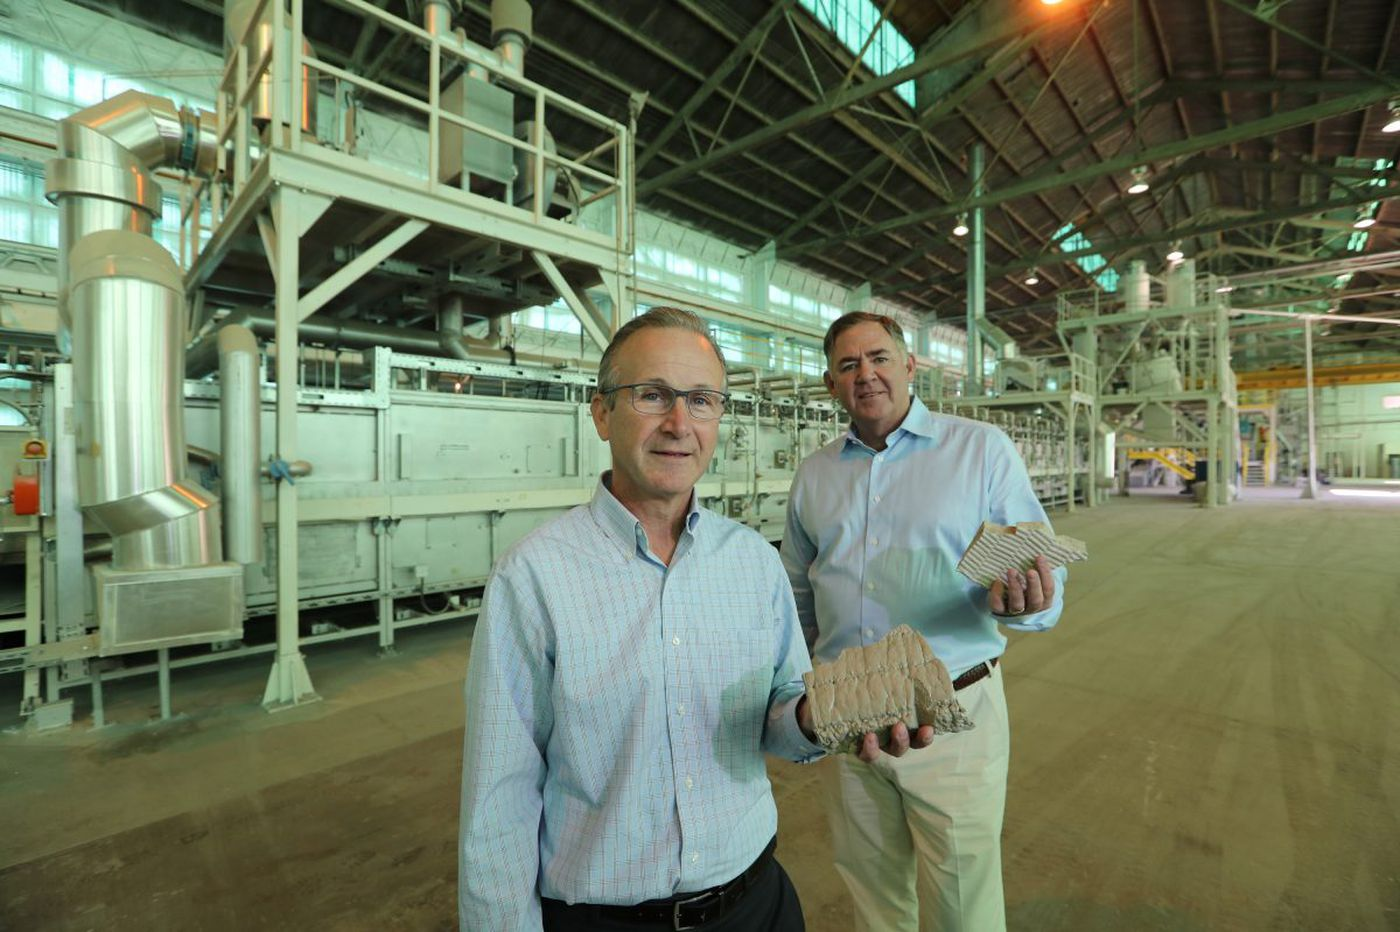 Eddystone company that recycles old glass into rocks plans a $24 million expansion